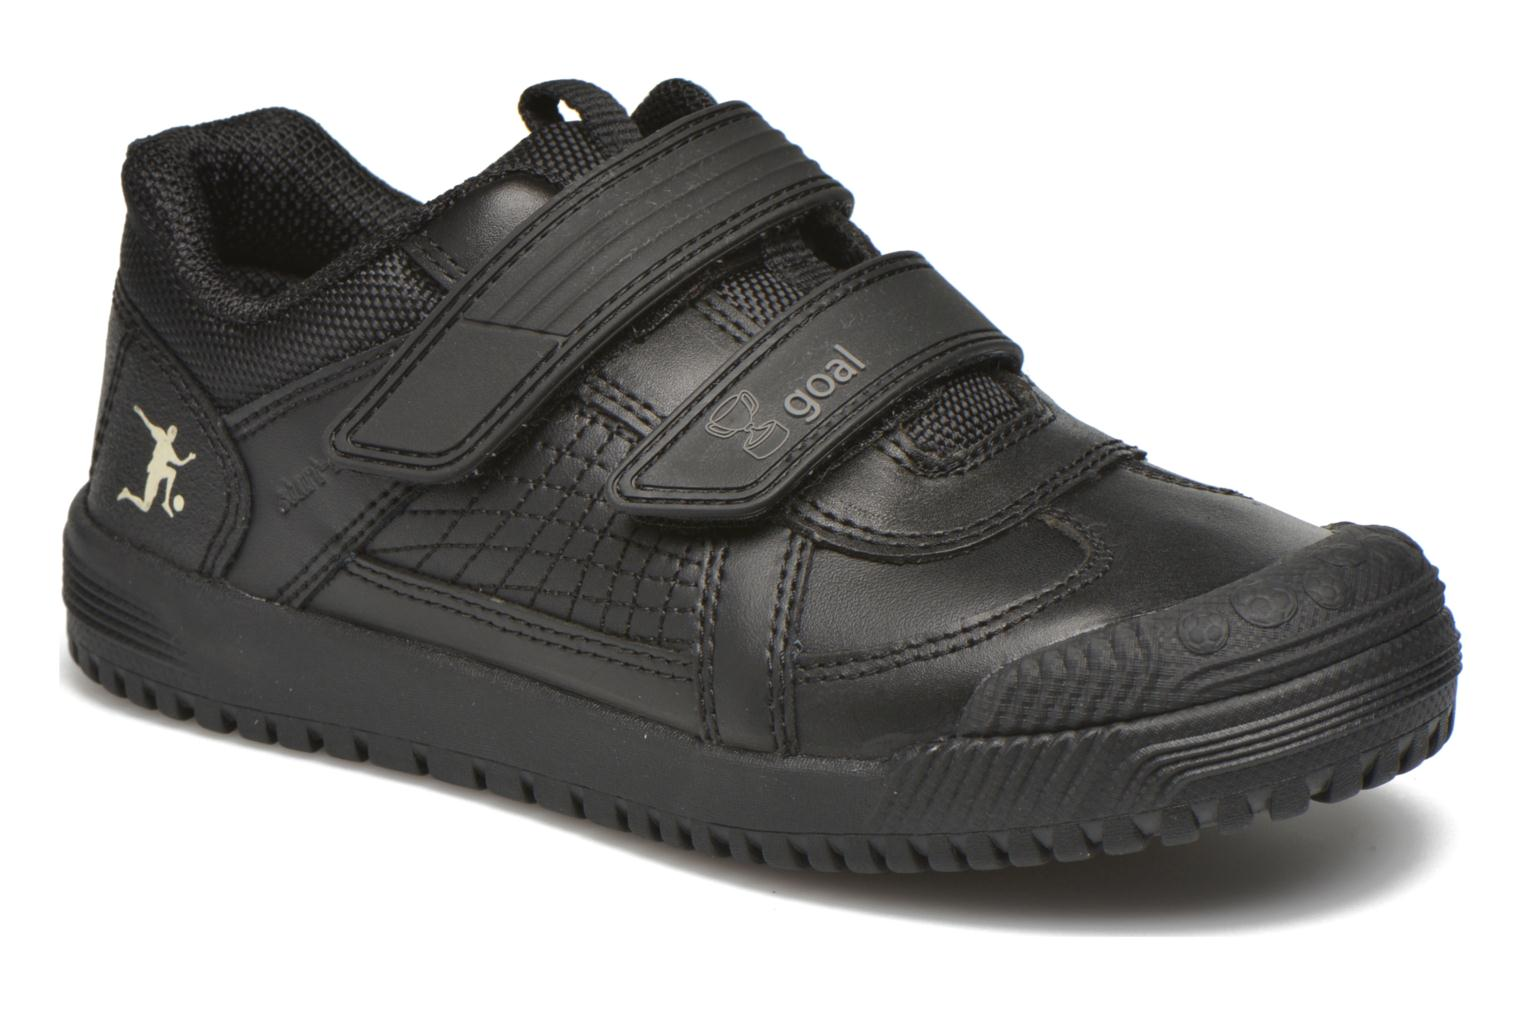 Cup Final Black leather